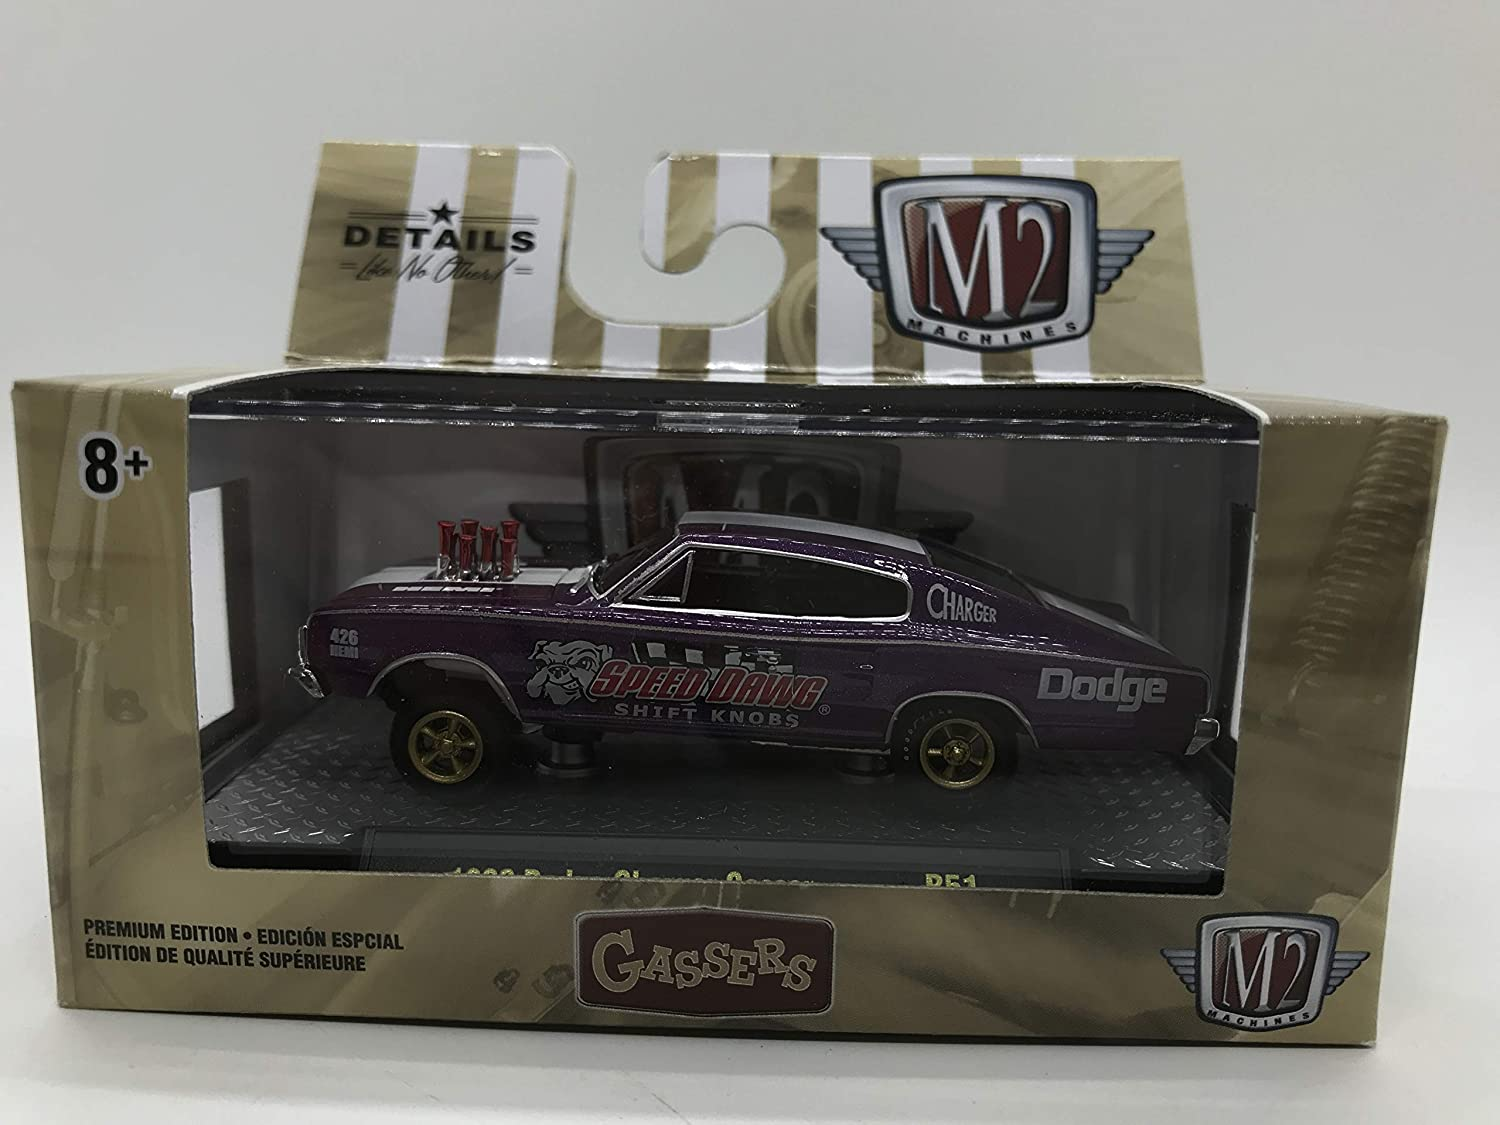 M2 Gassers Series Only 6880 Pieces 1966 Ford Mustang Gasser